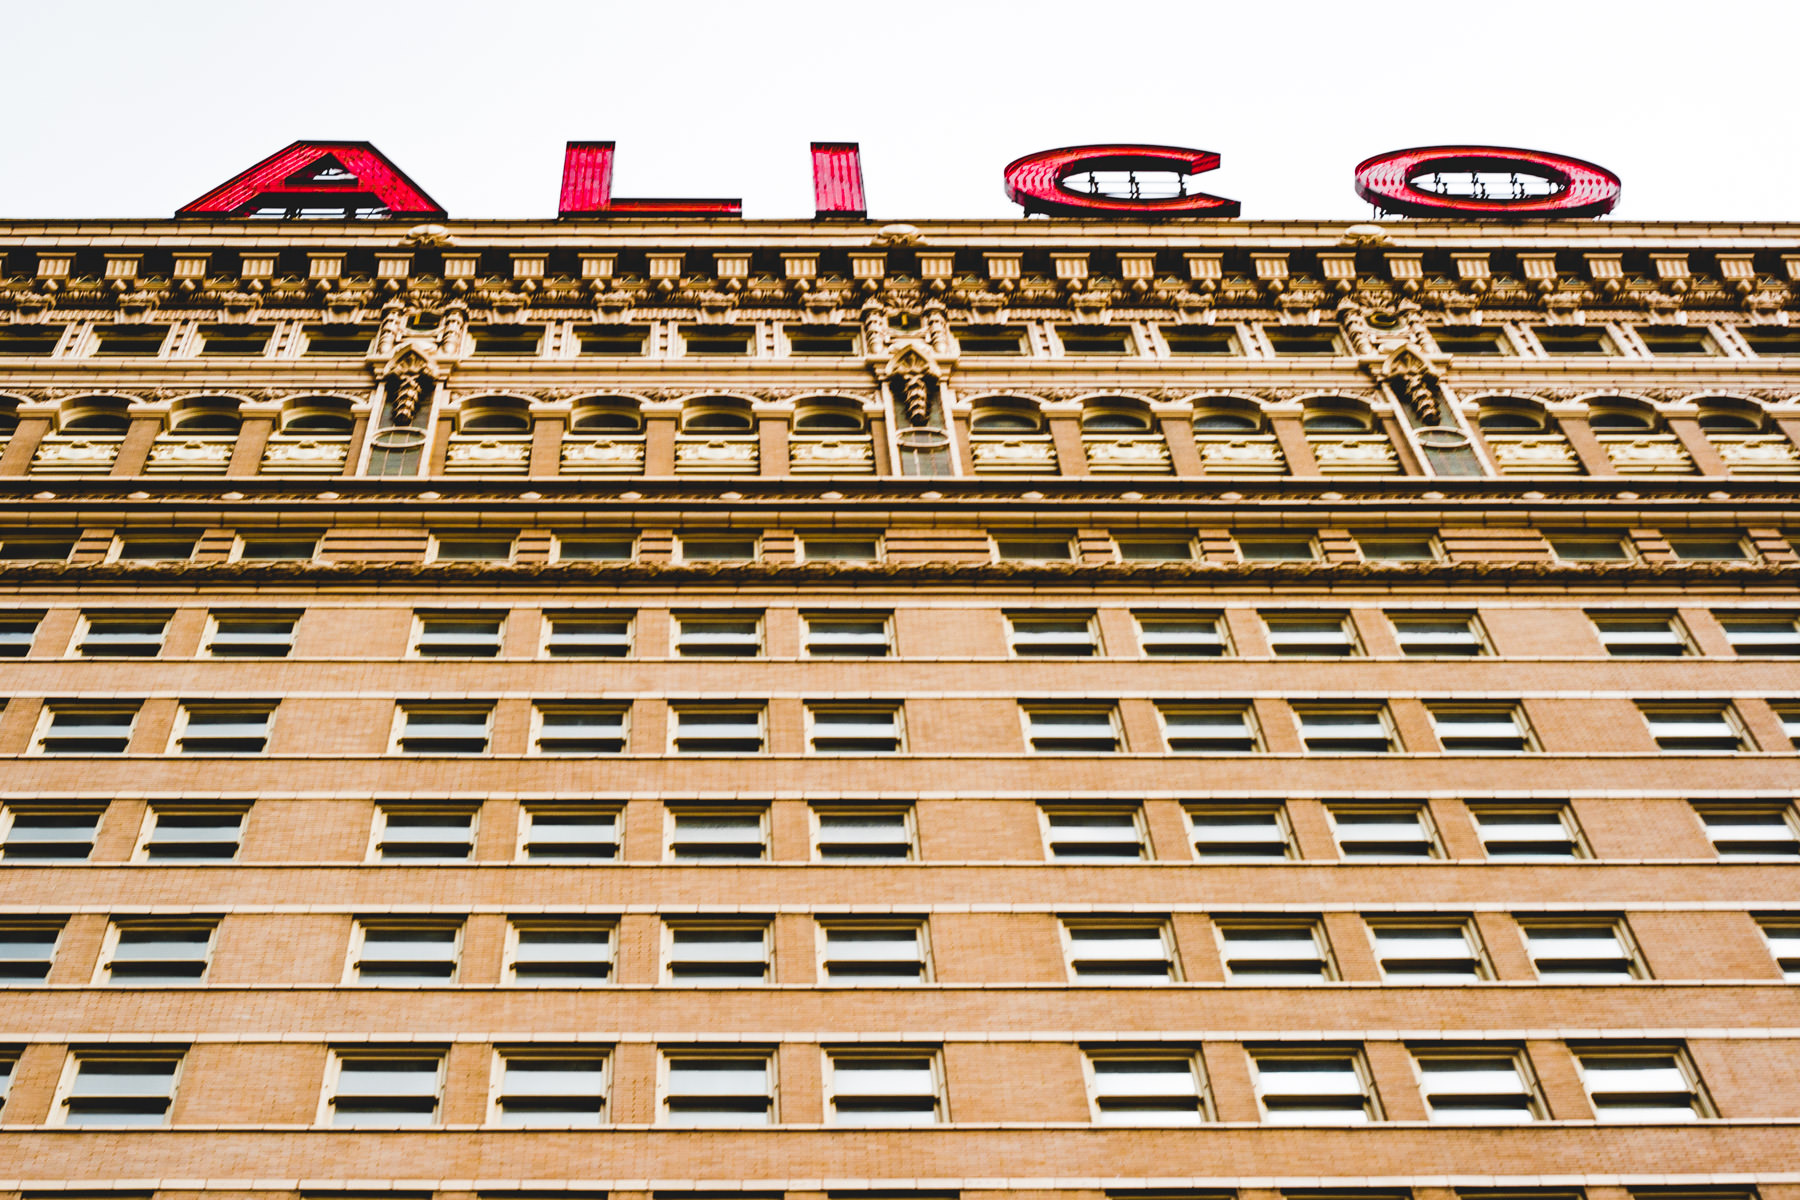 The ALICO building rises into the sky over Waco, Texas.